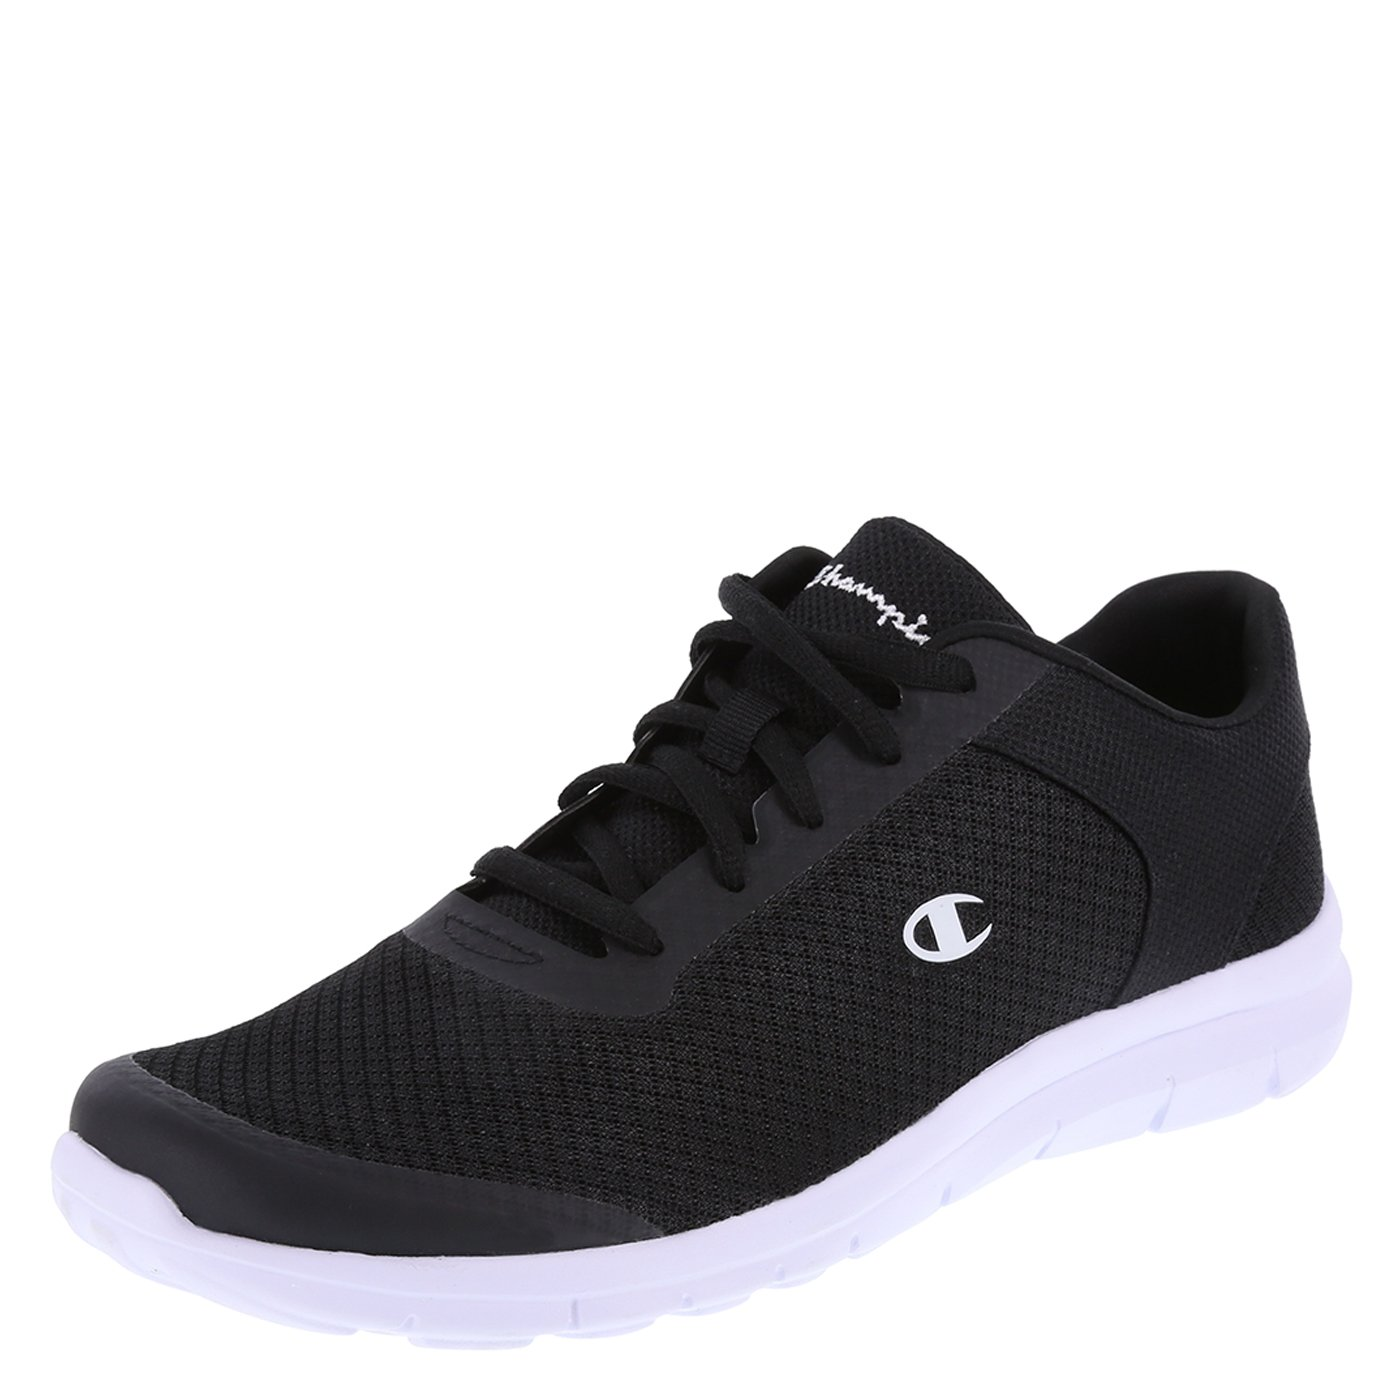 Champion Black White Men's Performance Gusto Cross Trainer 11.5 Regular by Champion